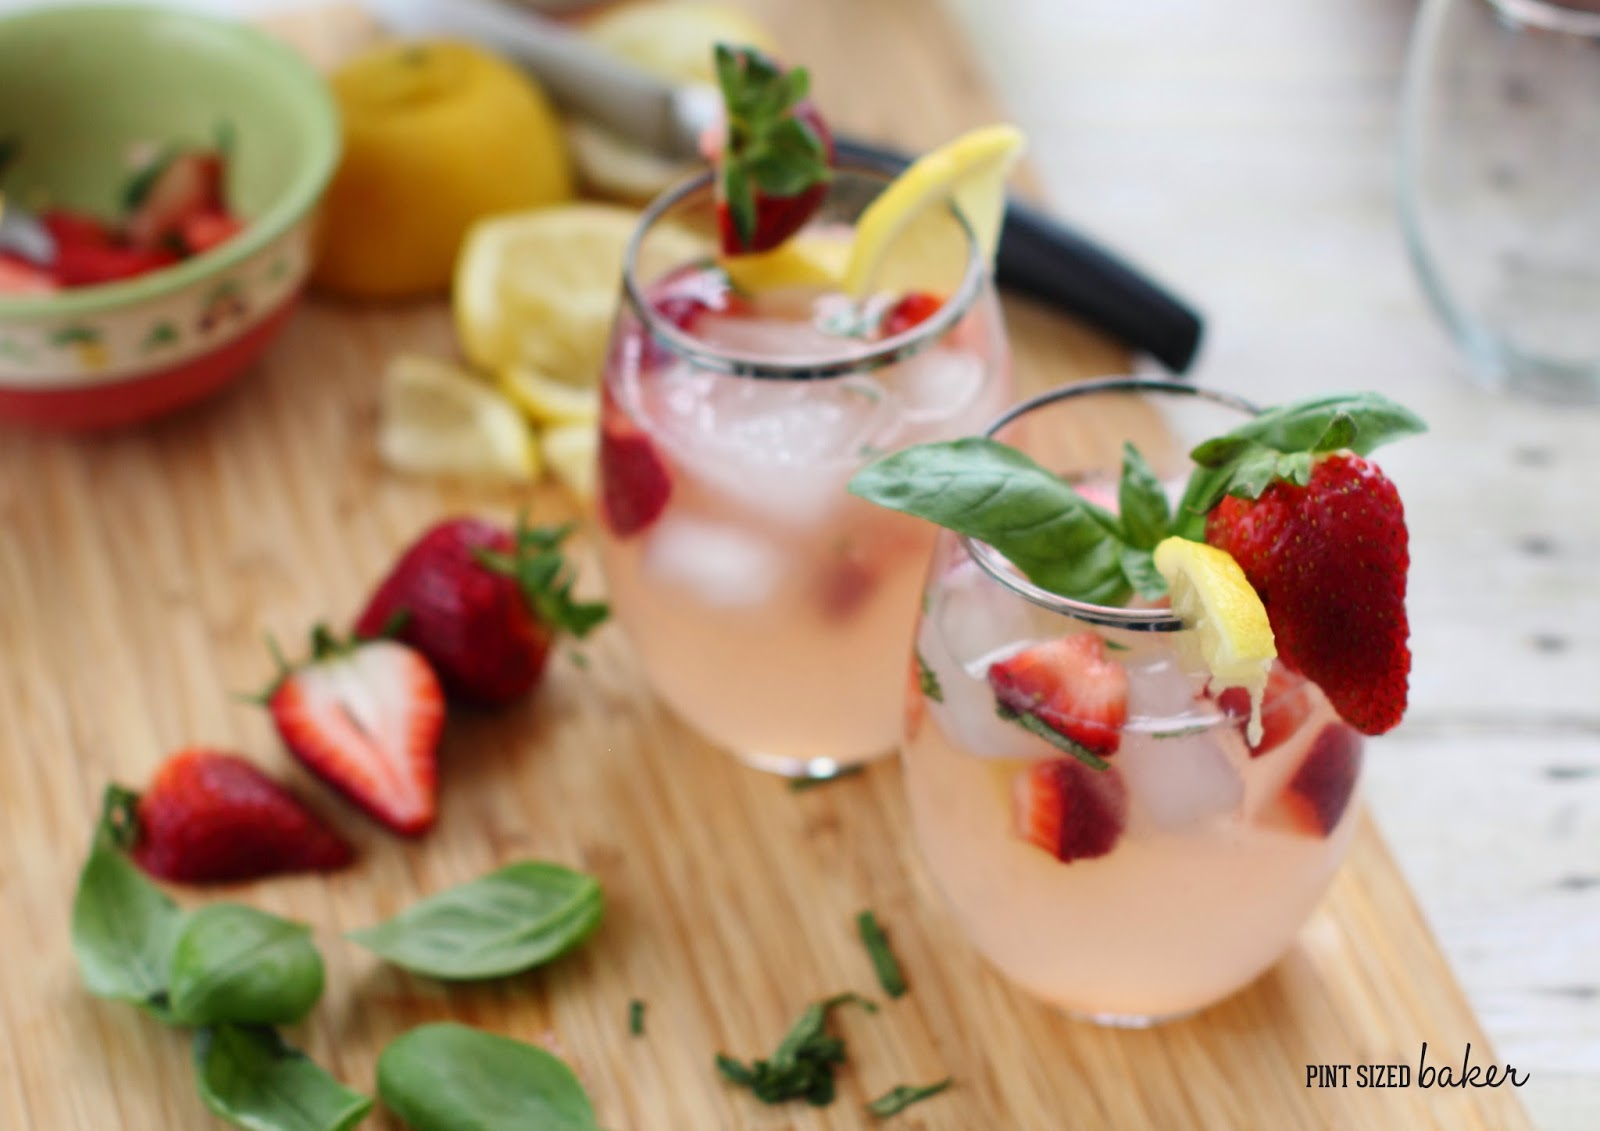 Pint Sized Baker: Strawberry Basil Lemonade